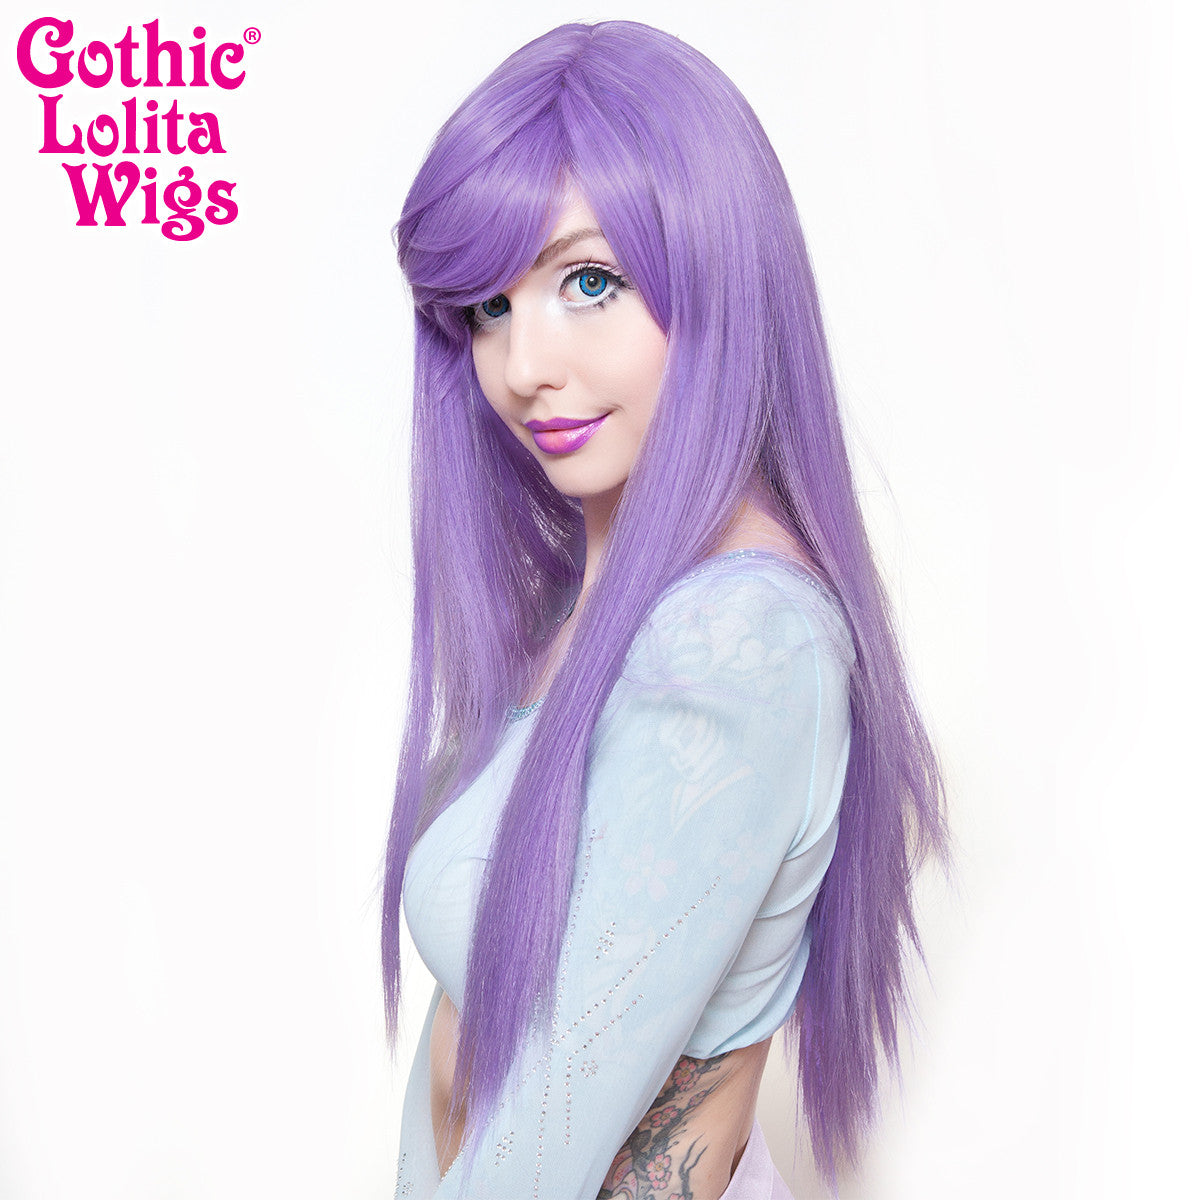 Gothic Lolita Wigs® <br> Bella™ Collection - Lavender Mix -00681